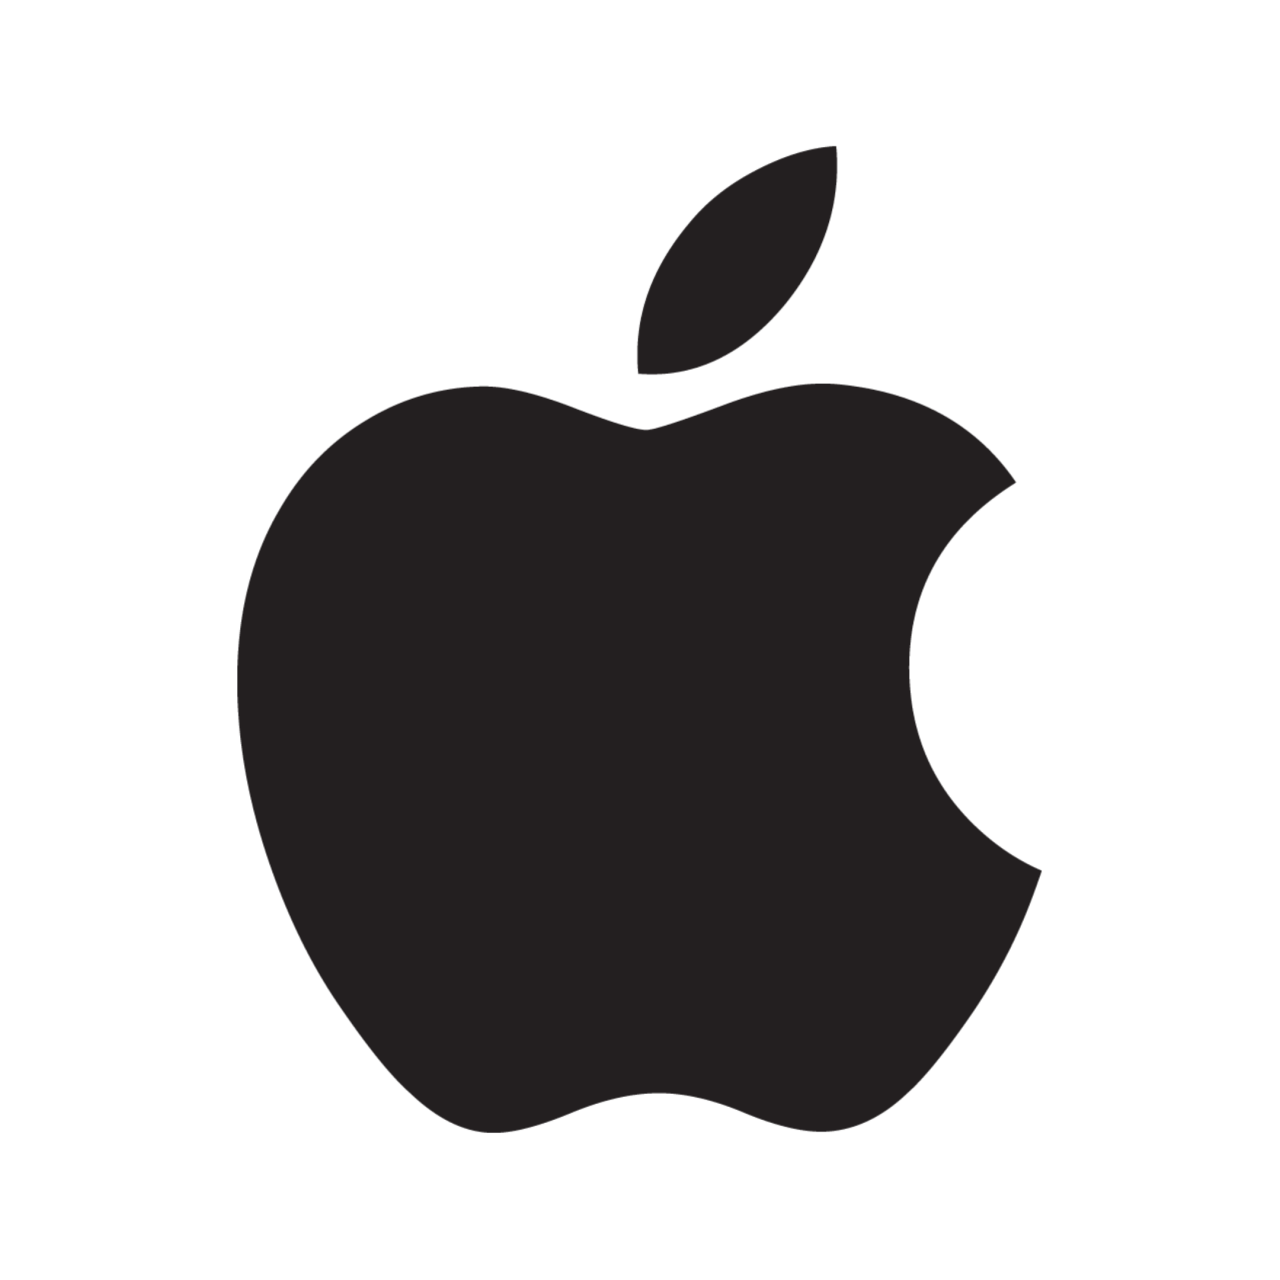 Models Logo Apple Desktop Free Transparent Image HQ PNG Image